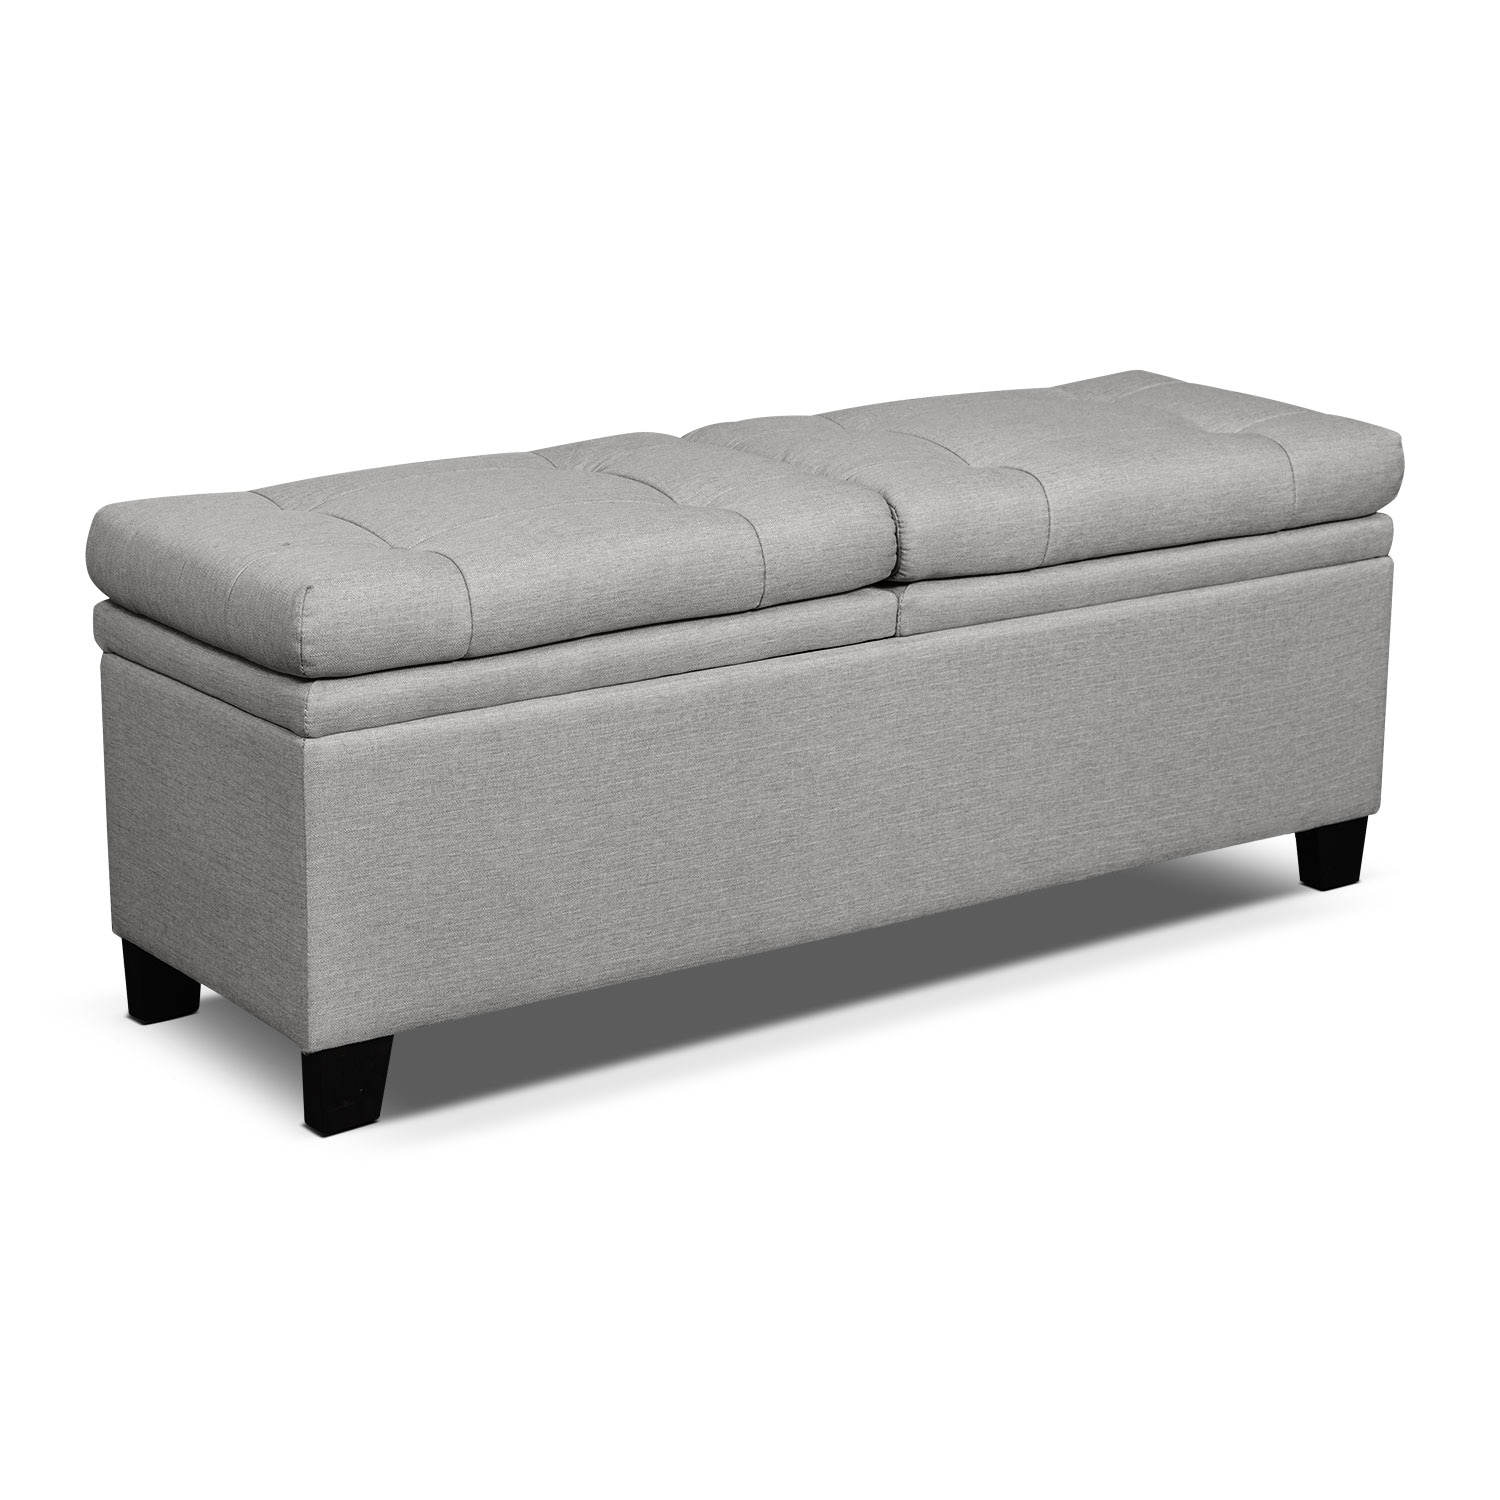 Bedroom Furniture - Bella Marmor Storage Bench - Gray